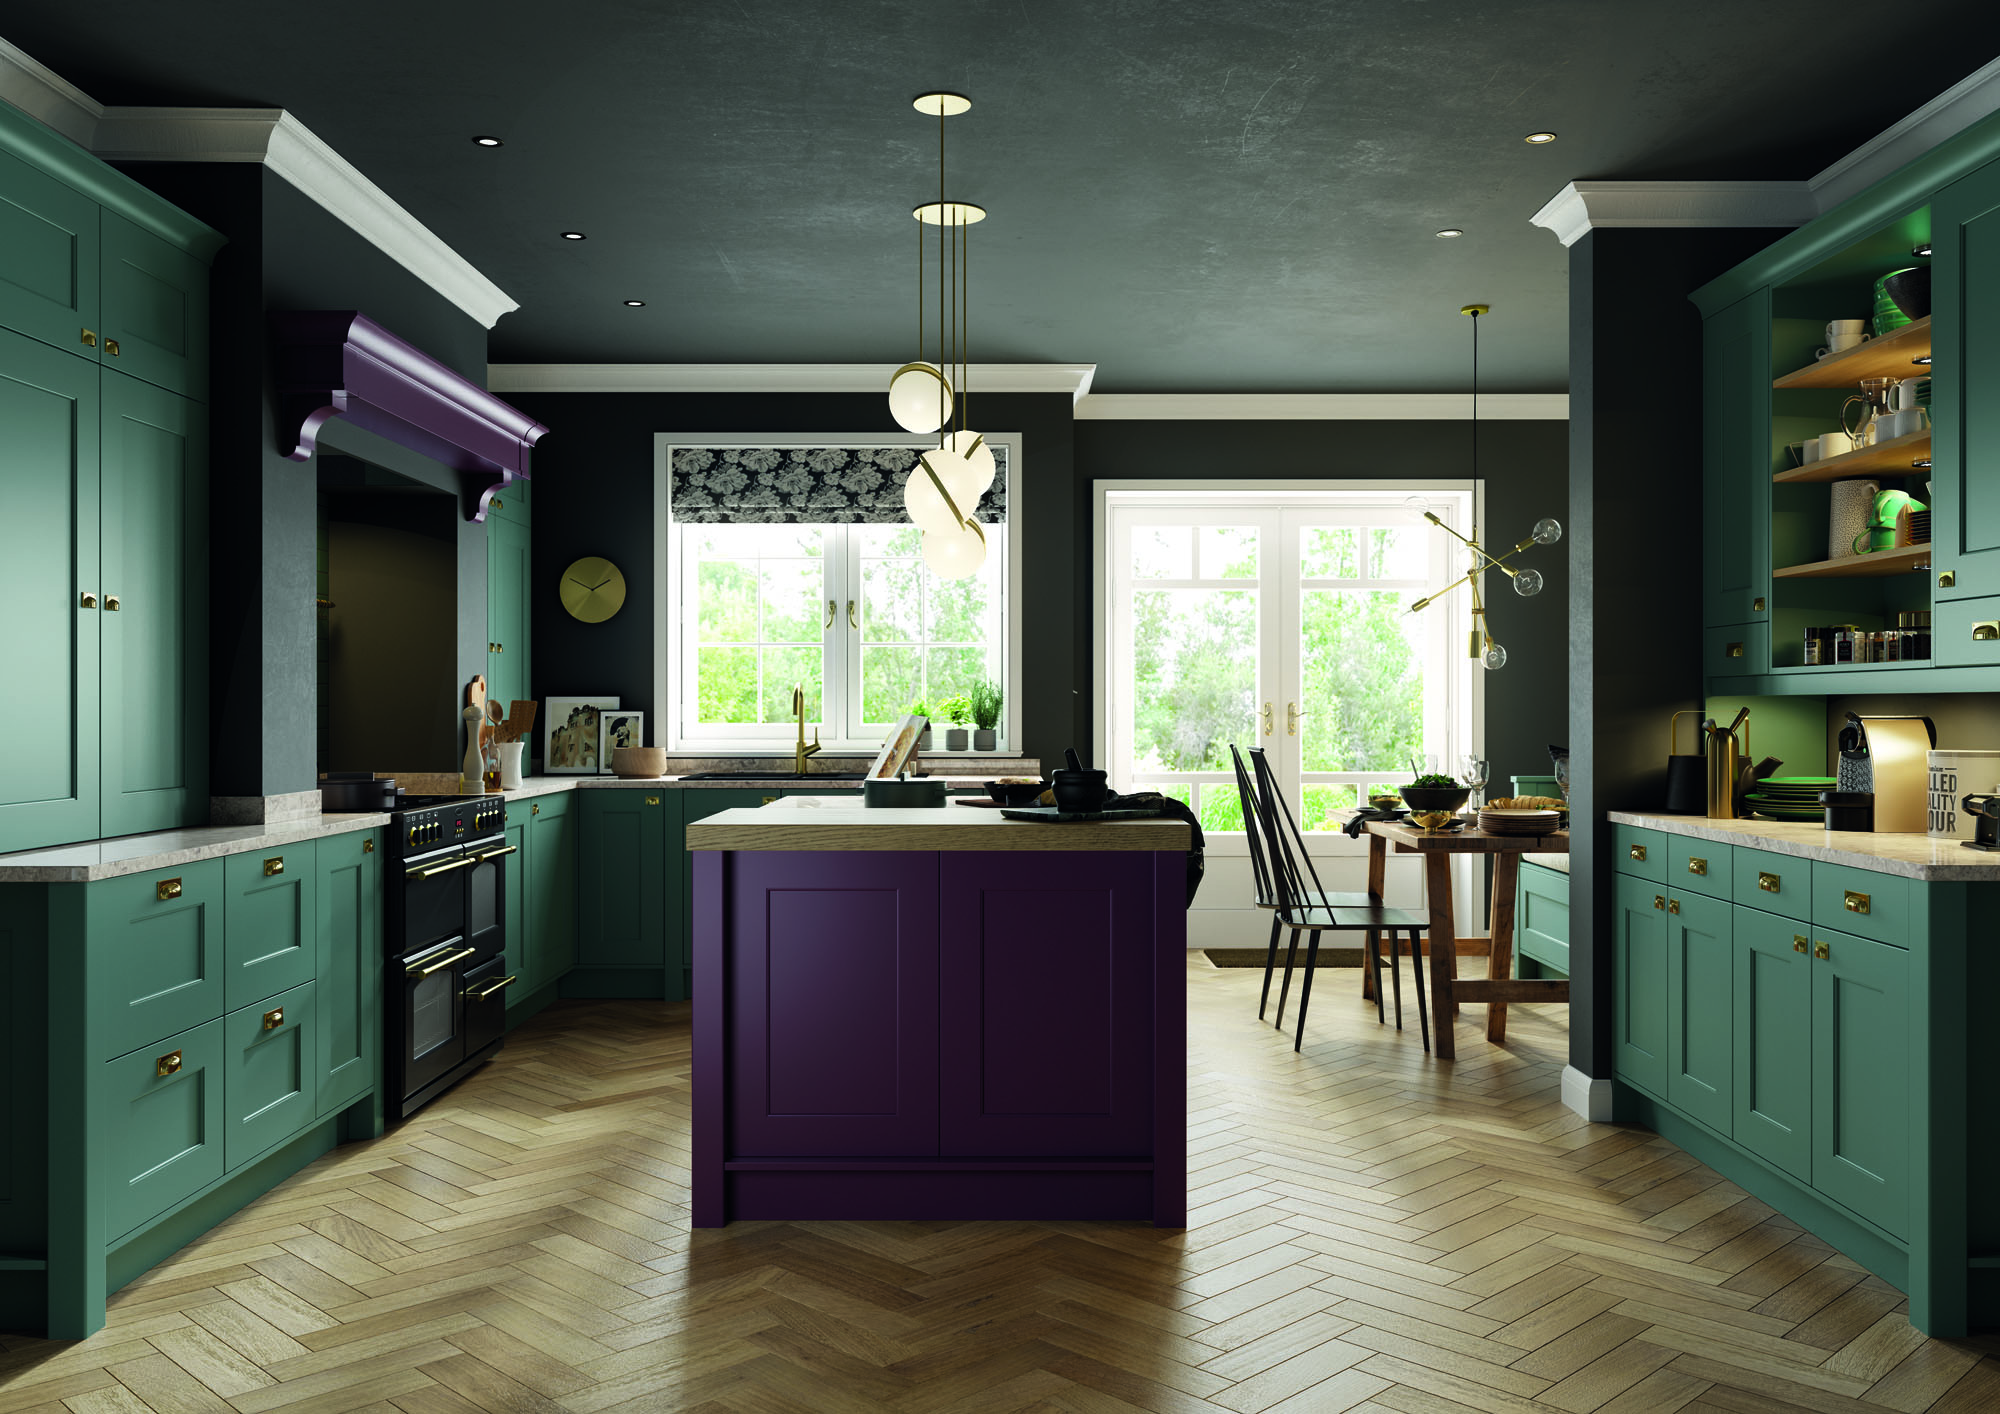 Treloy Kitchen in Viridian and Deep Heather